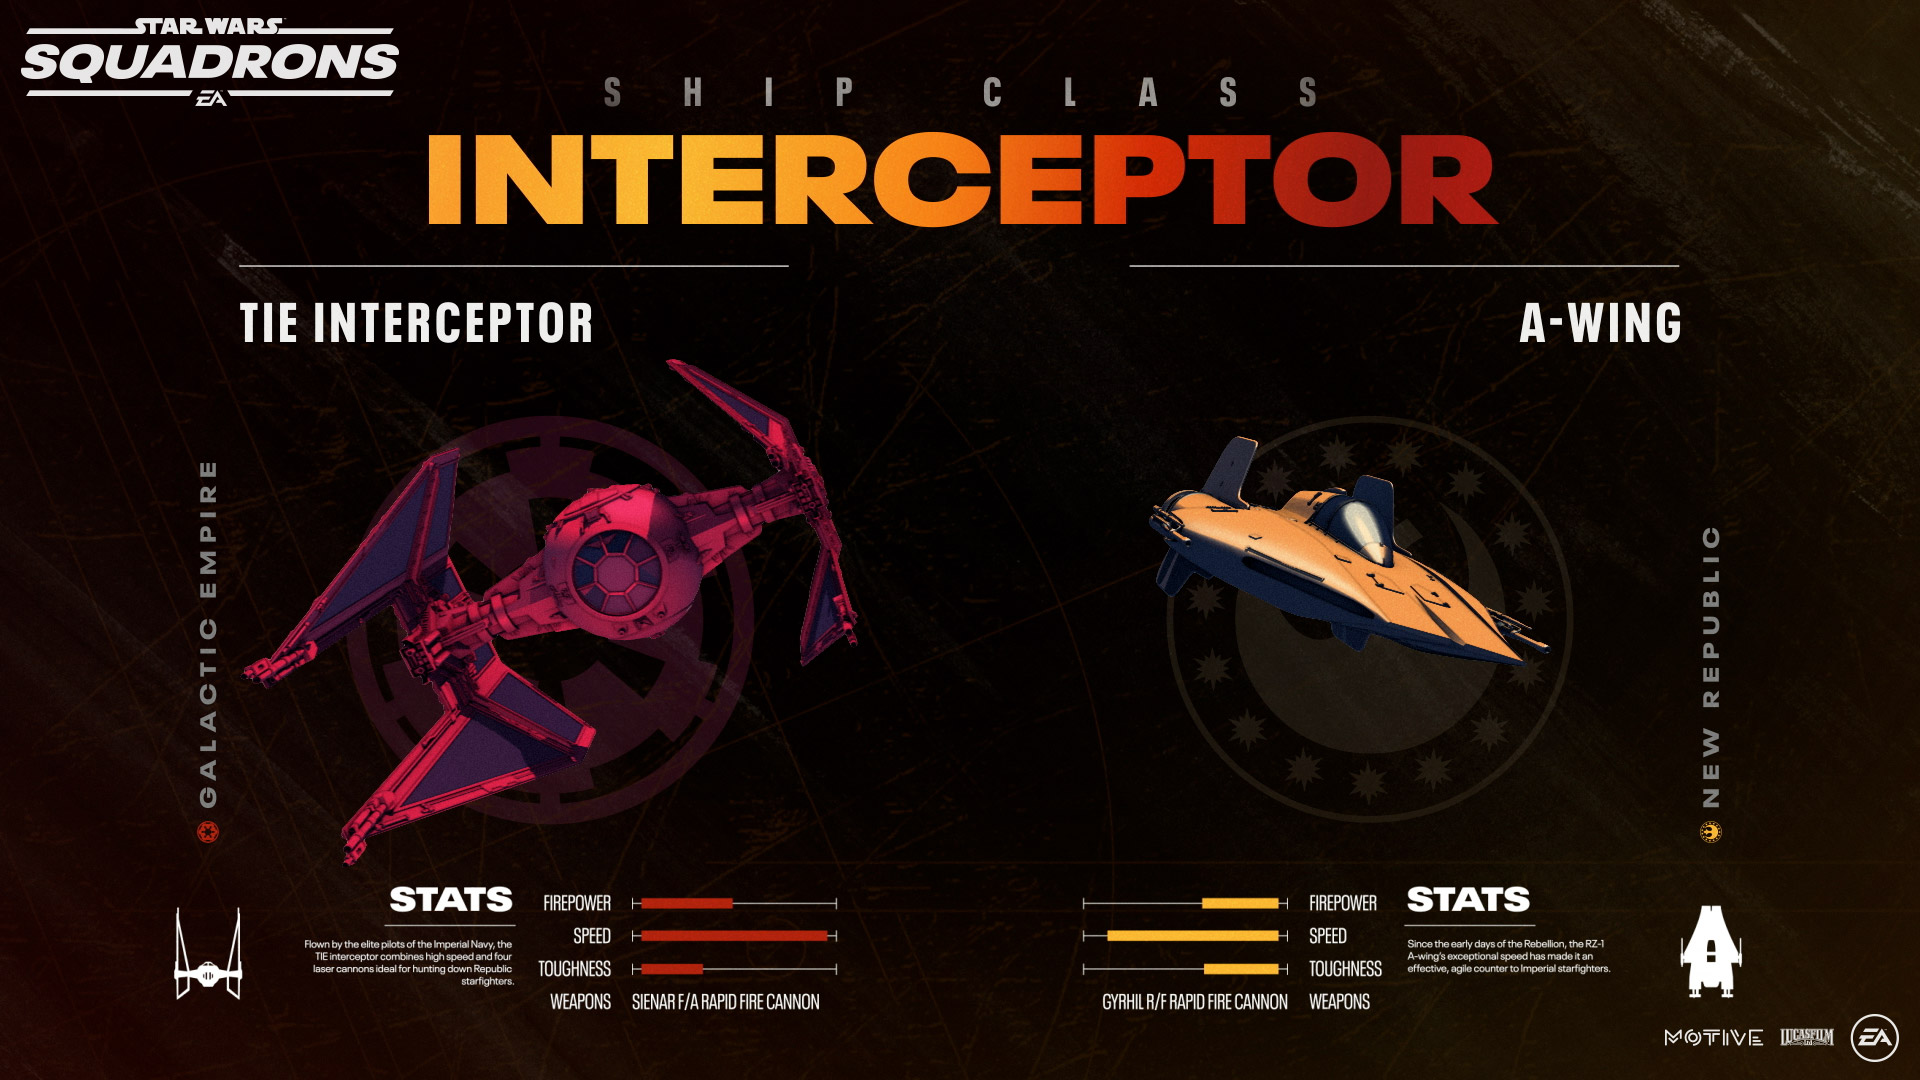 Star Wars Squadrons Image 7